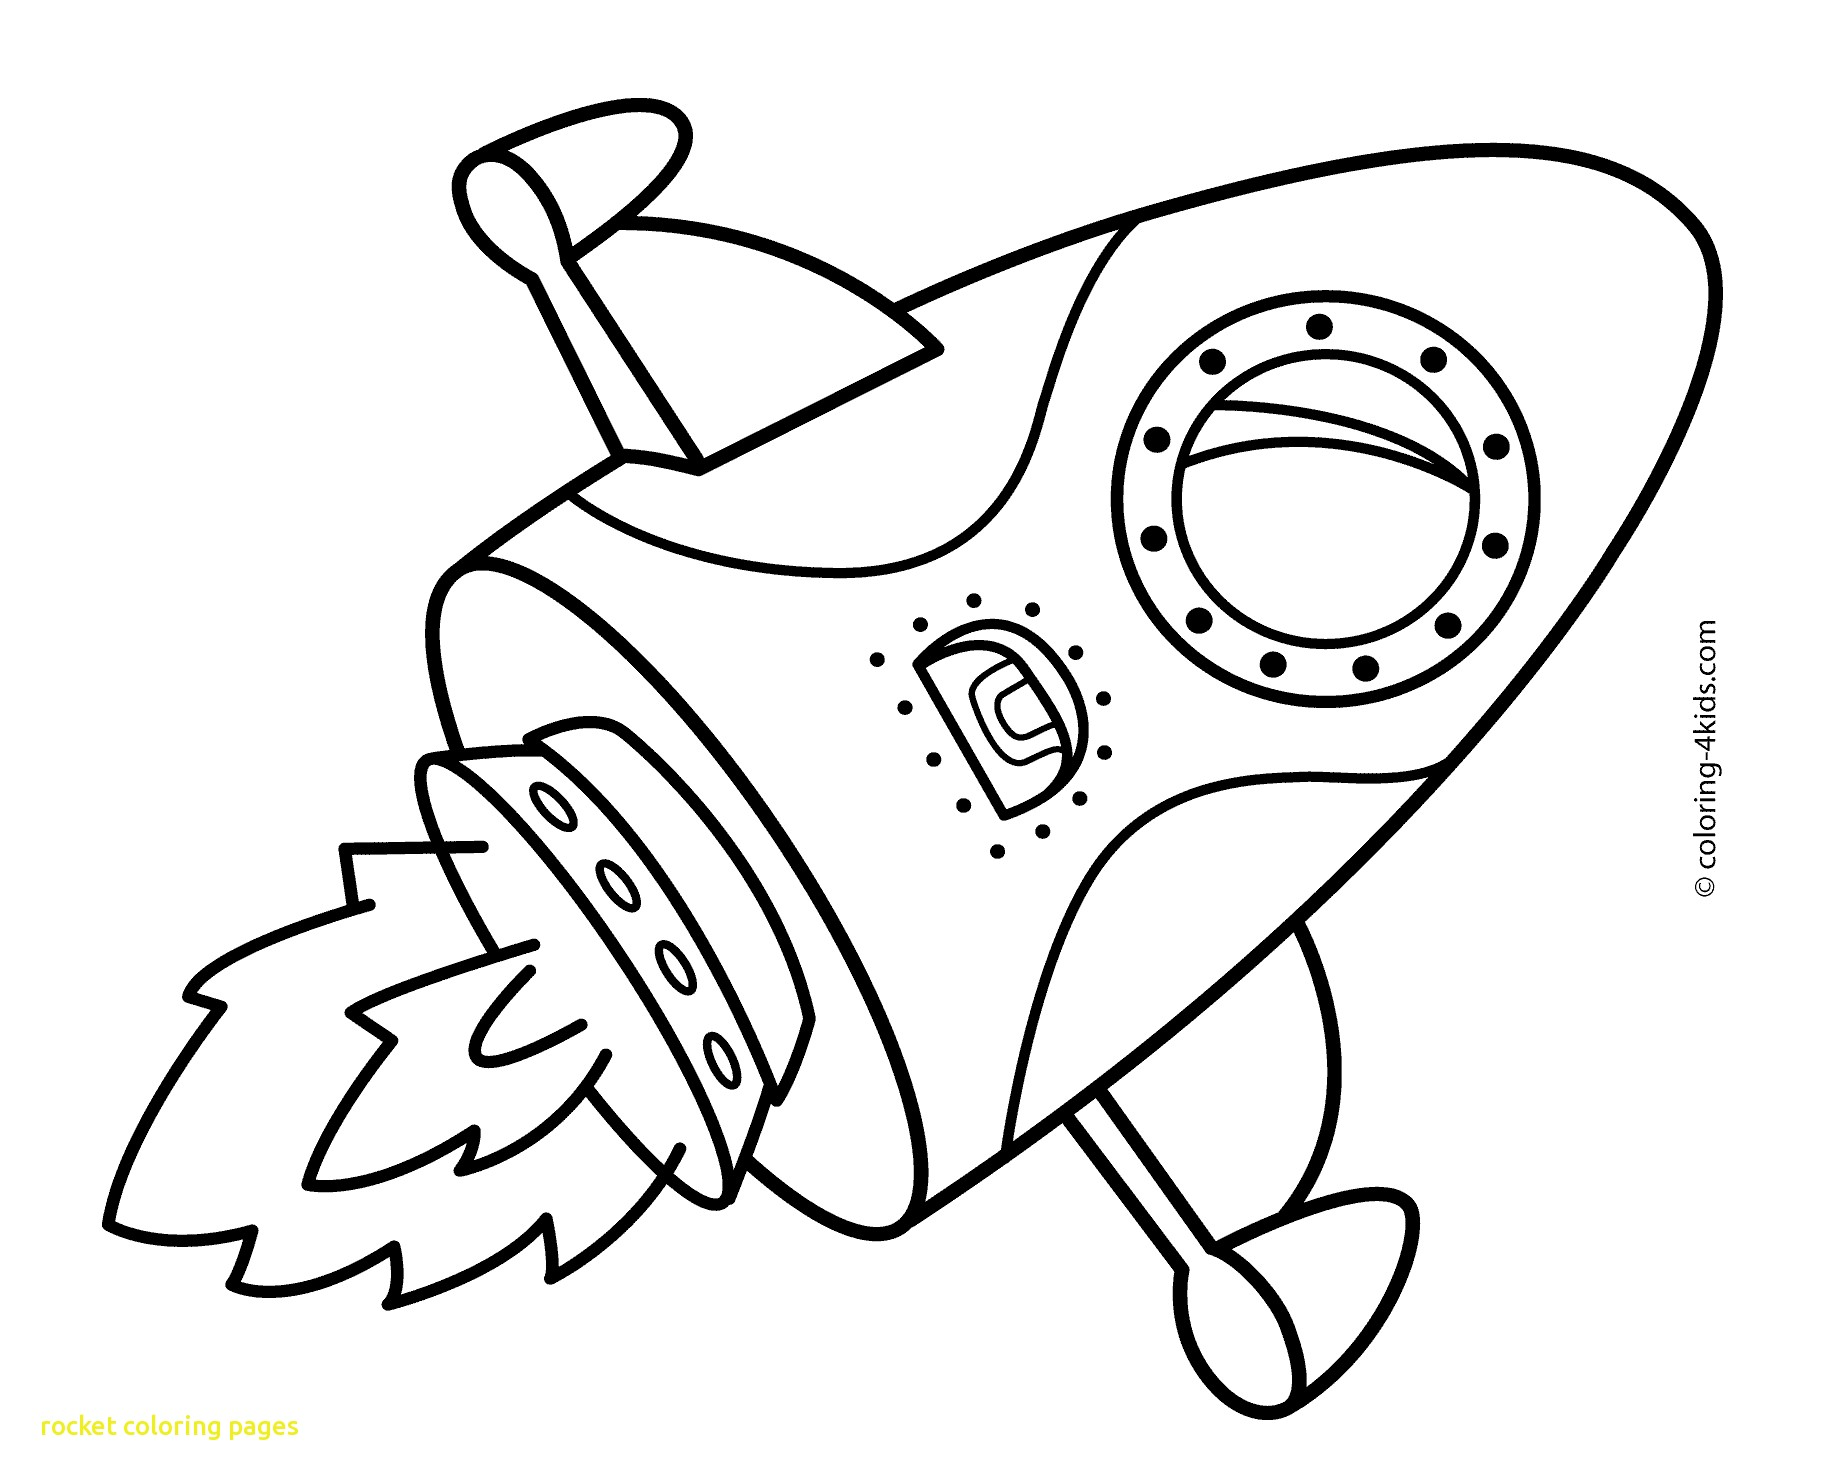 Rocket pages with colouring. Page clipart coloring png royalty free